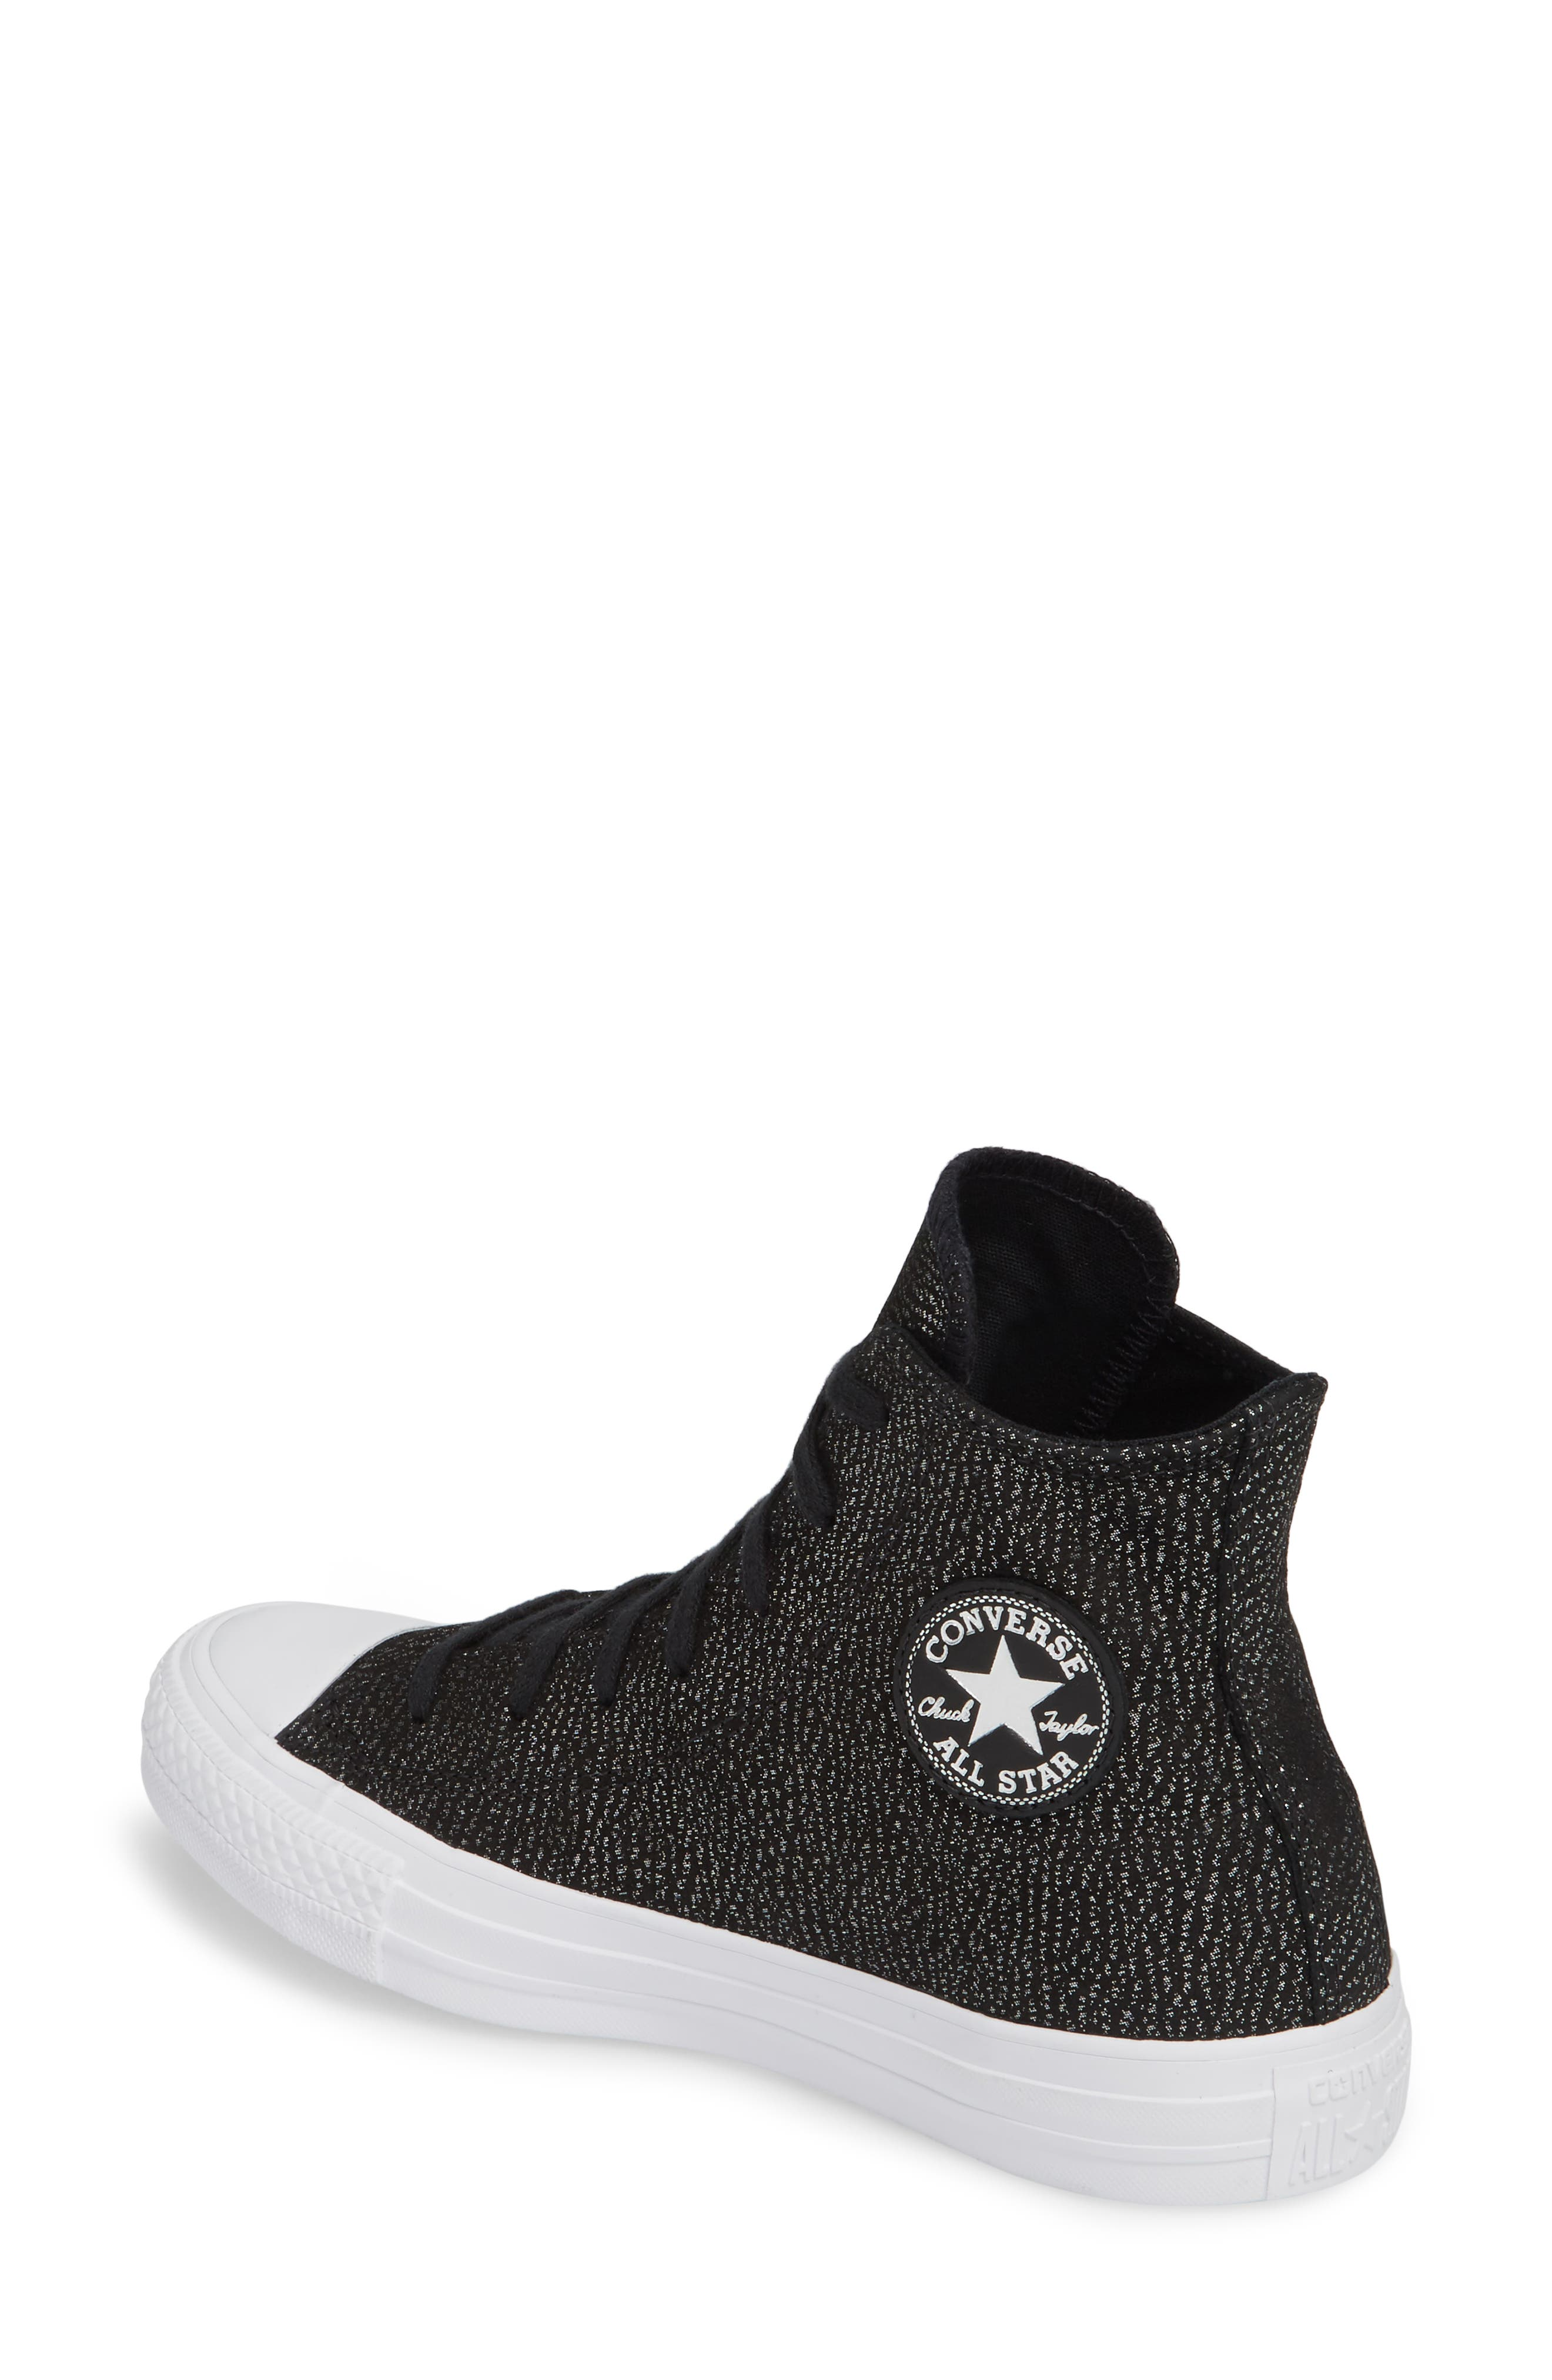 Chuck Taylor<sup>®</sup> All Star<sup>®</sup> Tipped Metallic High Top Sneaker,                             Alternate thumbnail 3, color,